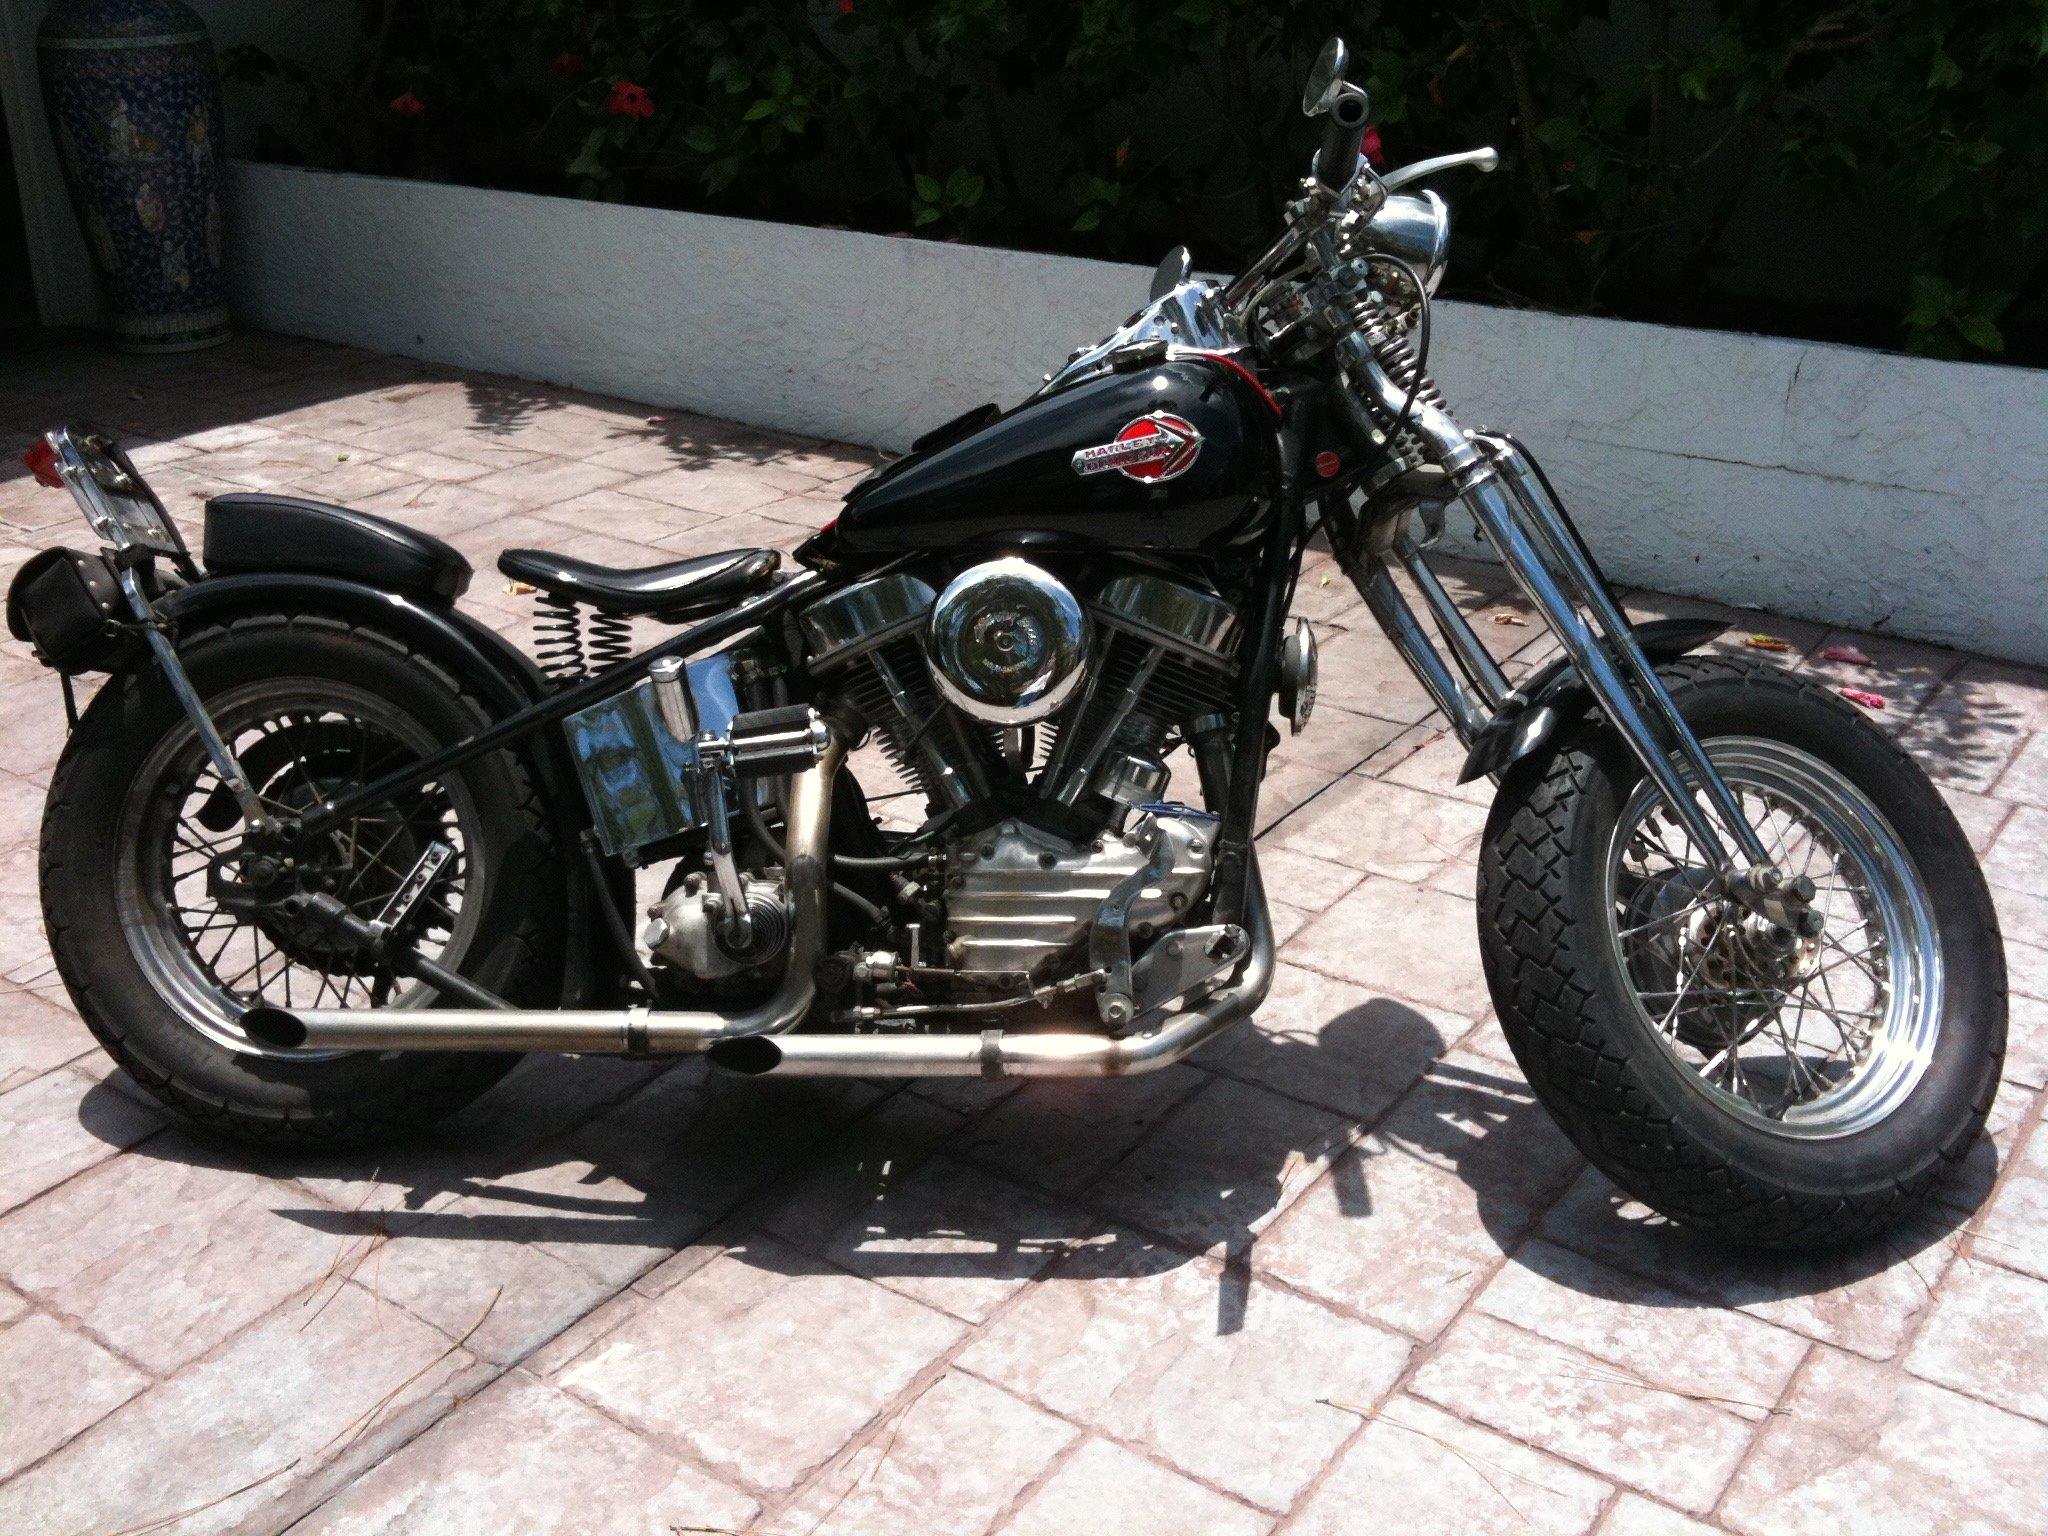 Period-correct 1954 Harley Pan Head, outlaw chopper